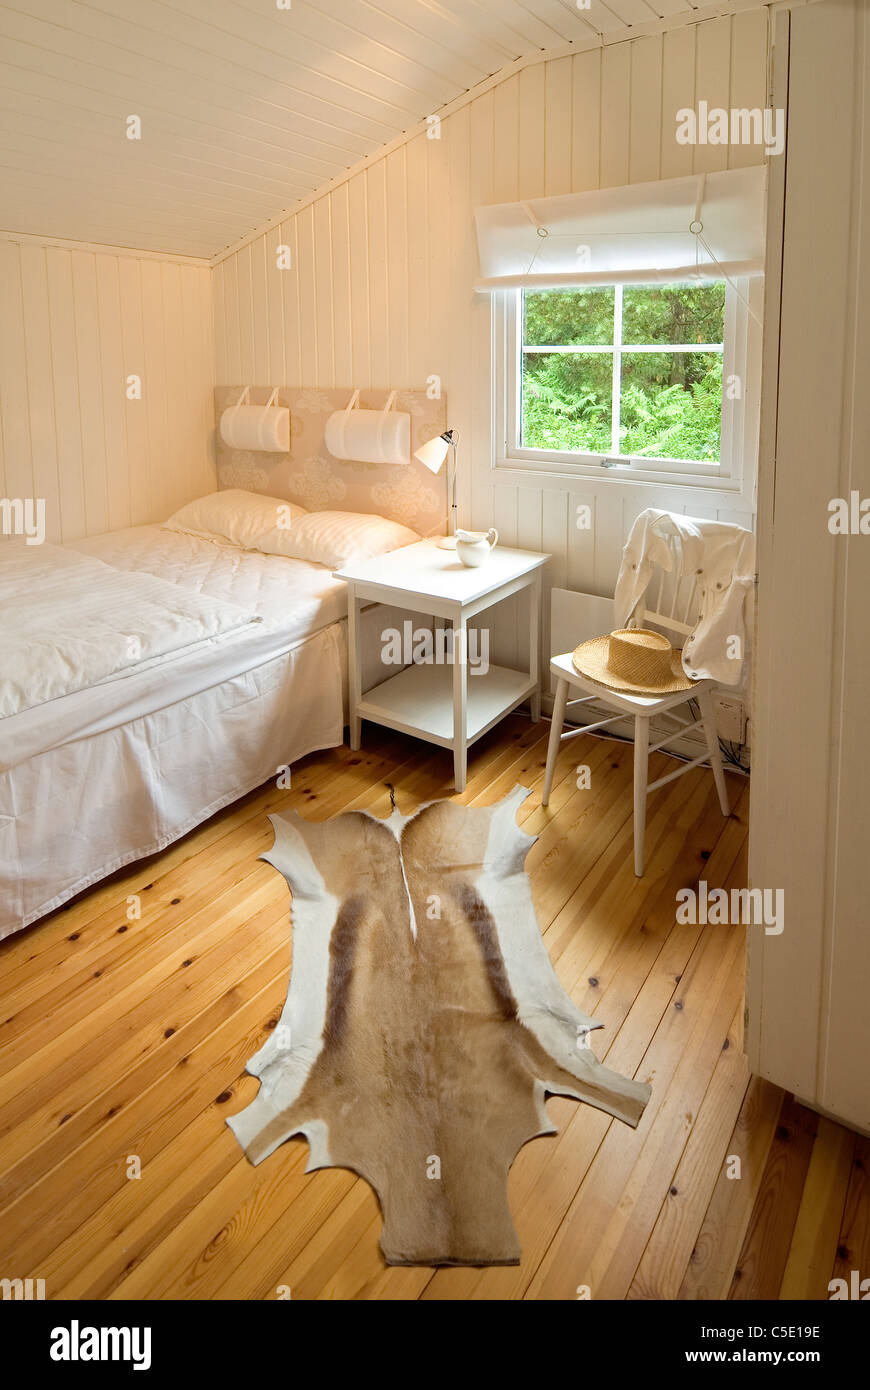 View of a window by bed with animal skin rug on wooden floor at a bedroom in house - Stock Image